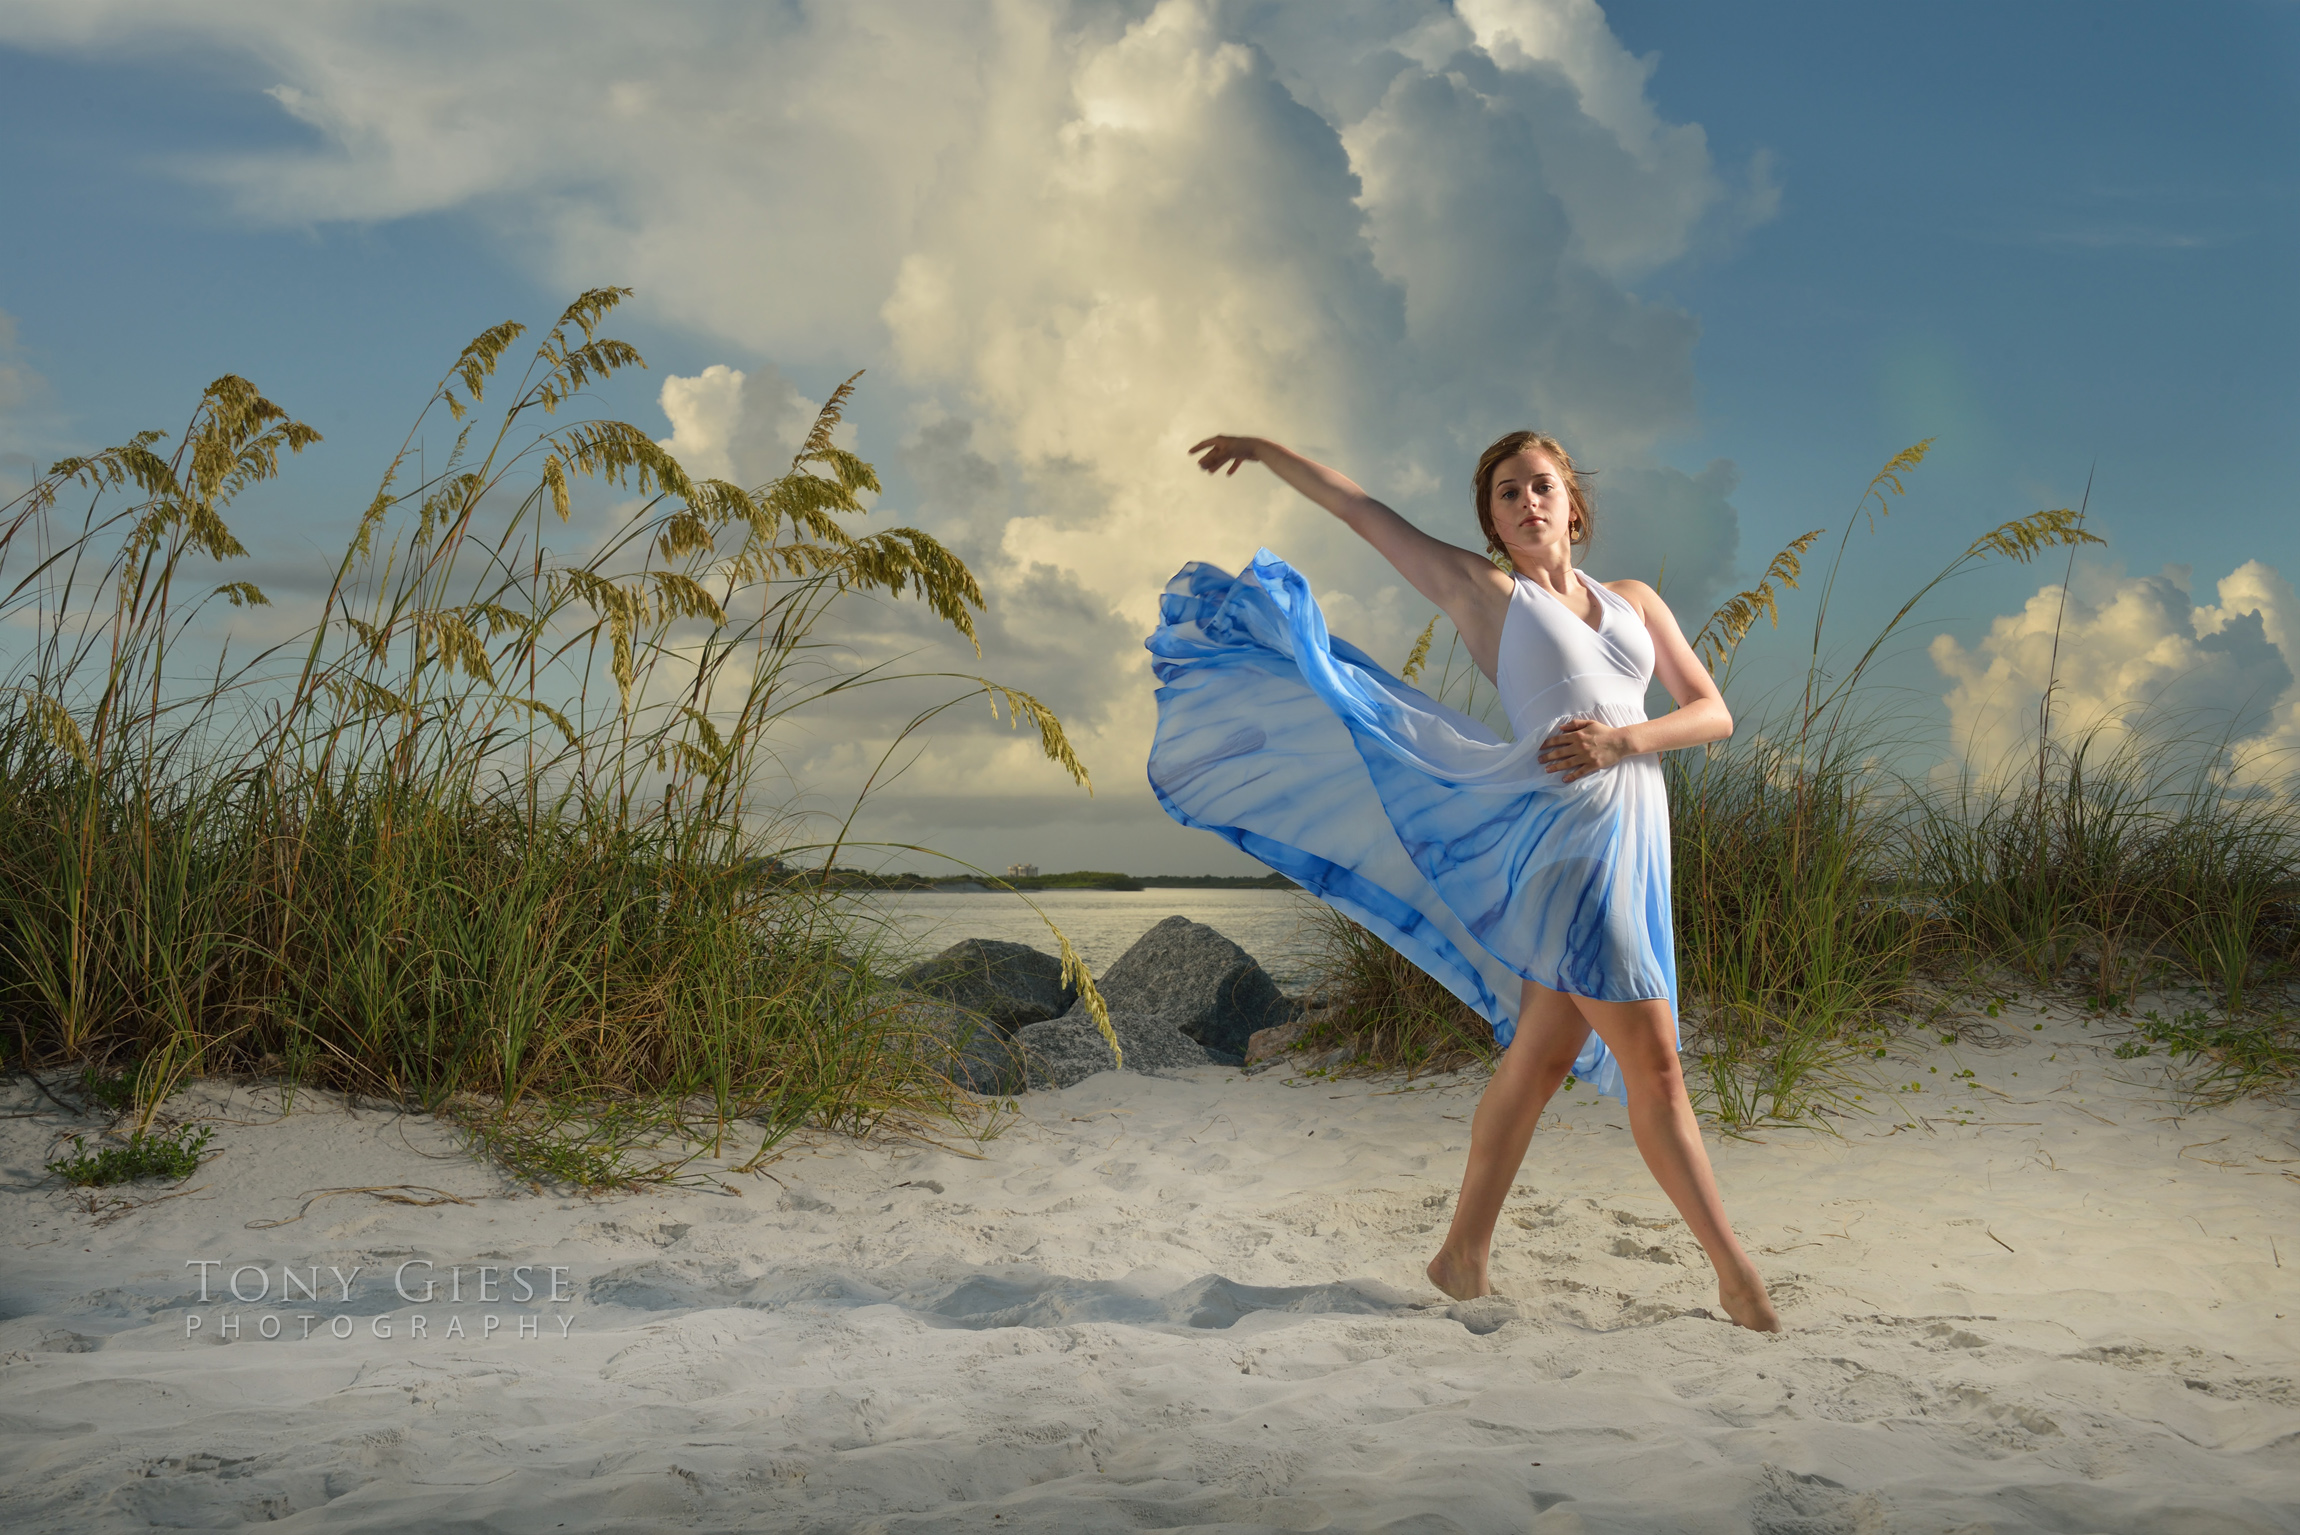 Tahnee dancing on the beach, Light house Point Park, Florida. Photo by Tony Giese